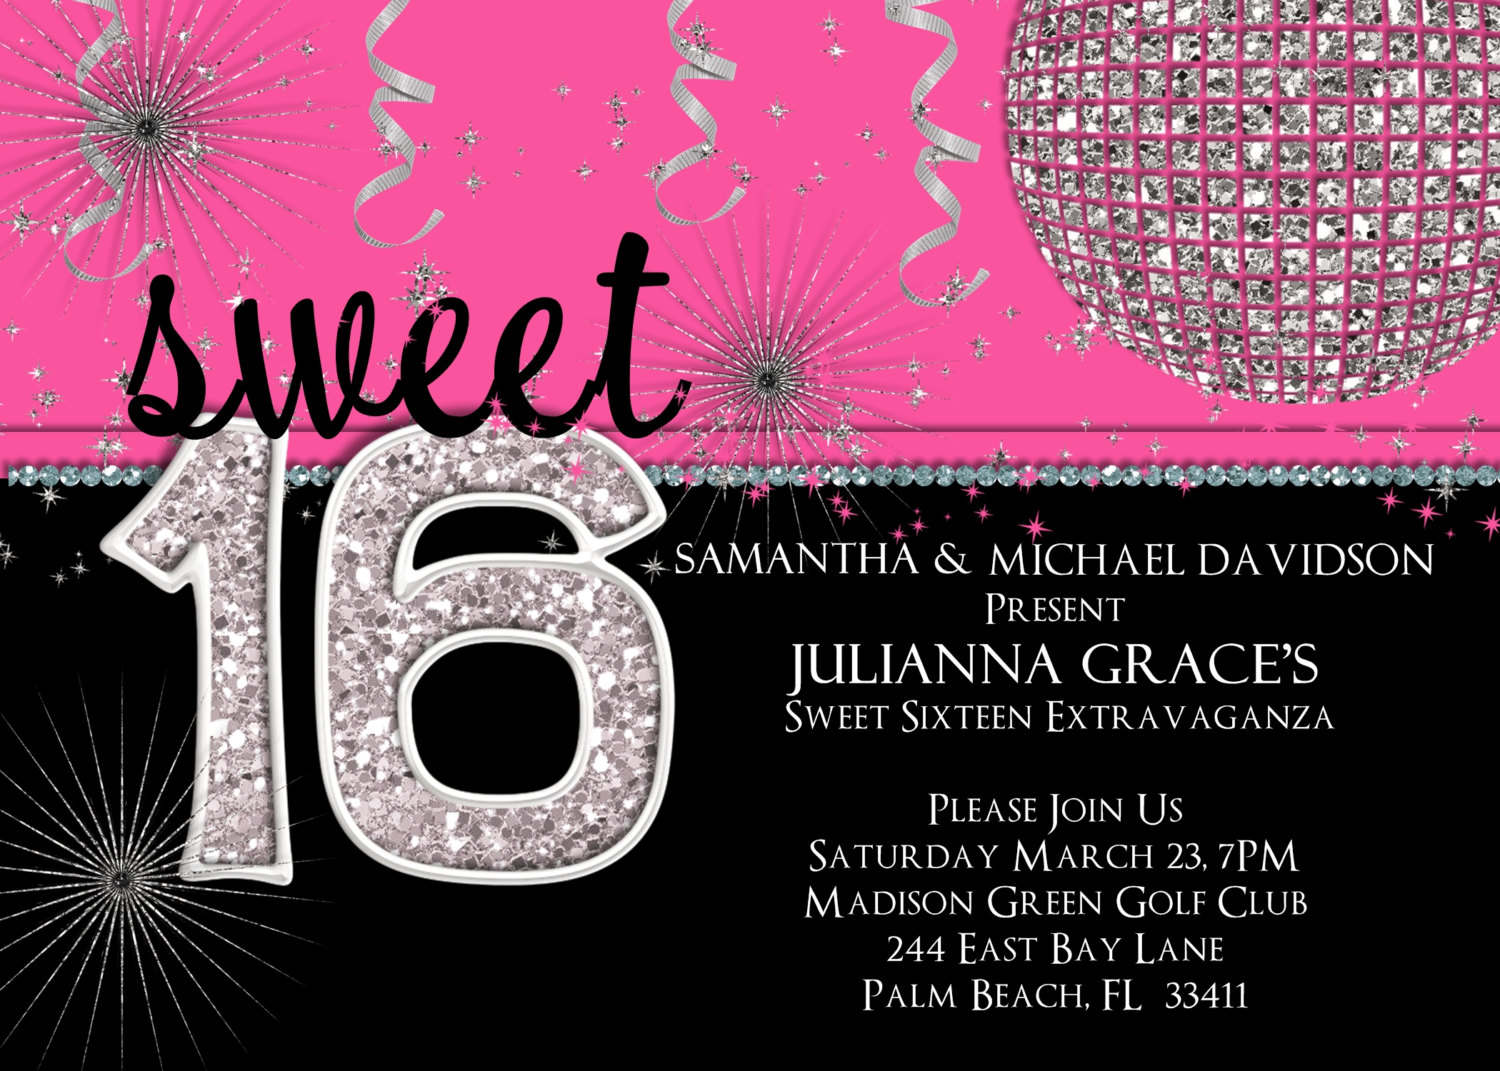 invitation ideas for 16th birthday party ; 16th-birthday-party-invitations-templates-free-is-to-sum-up-your-outstanding-ideas-of-do-it-yourself-charming-Party-invitations-4